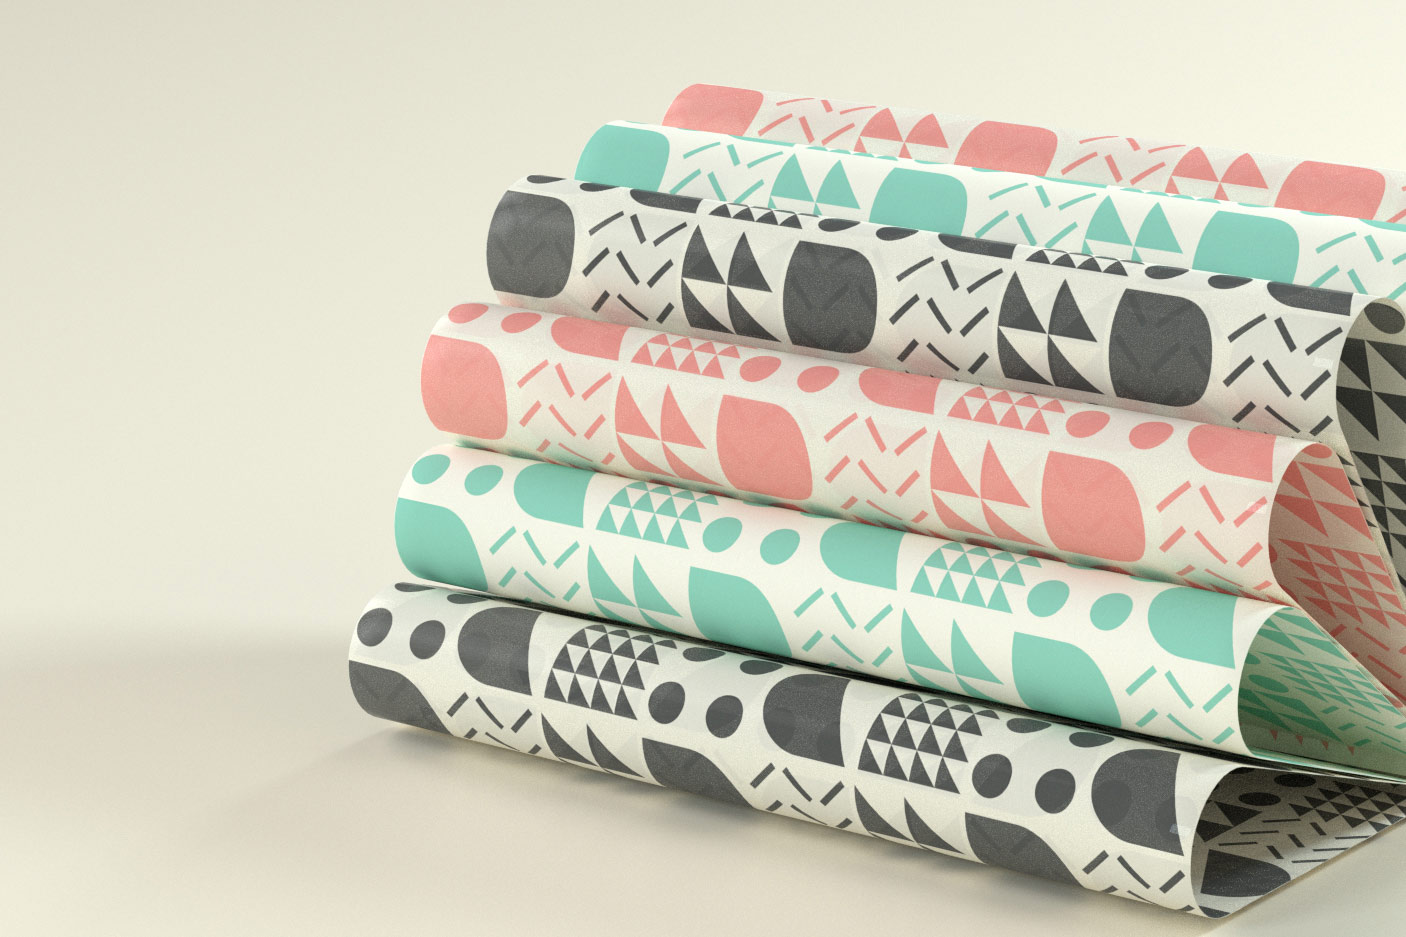 Banh and Boba wrapping papers